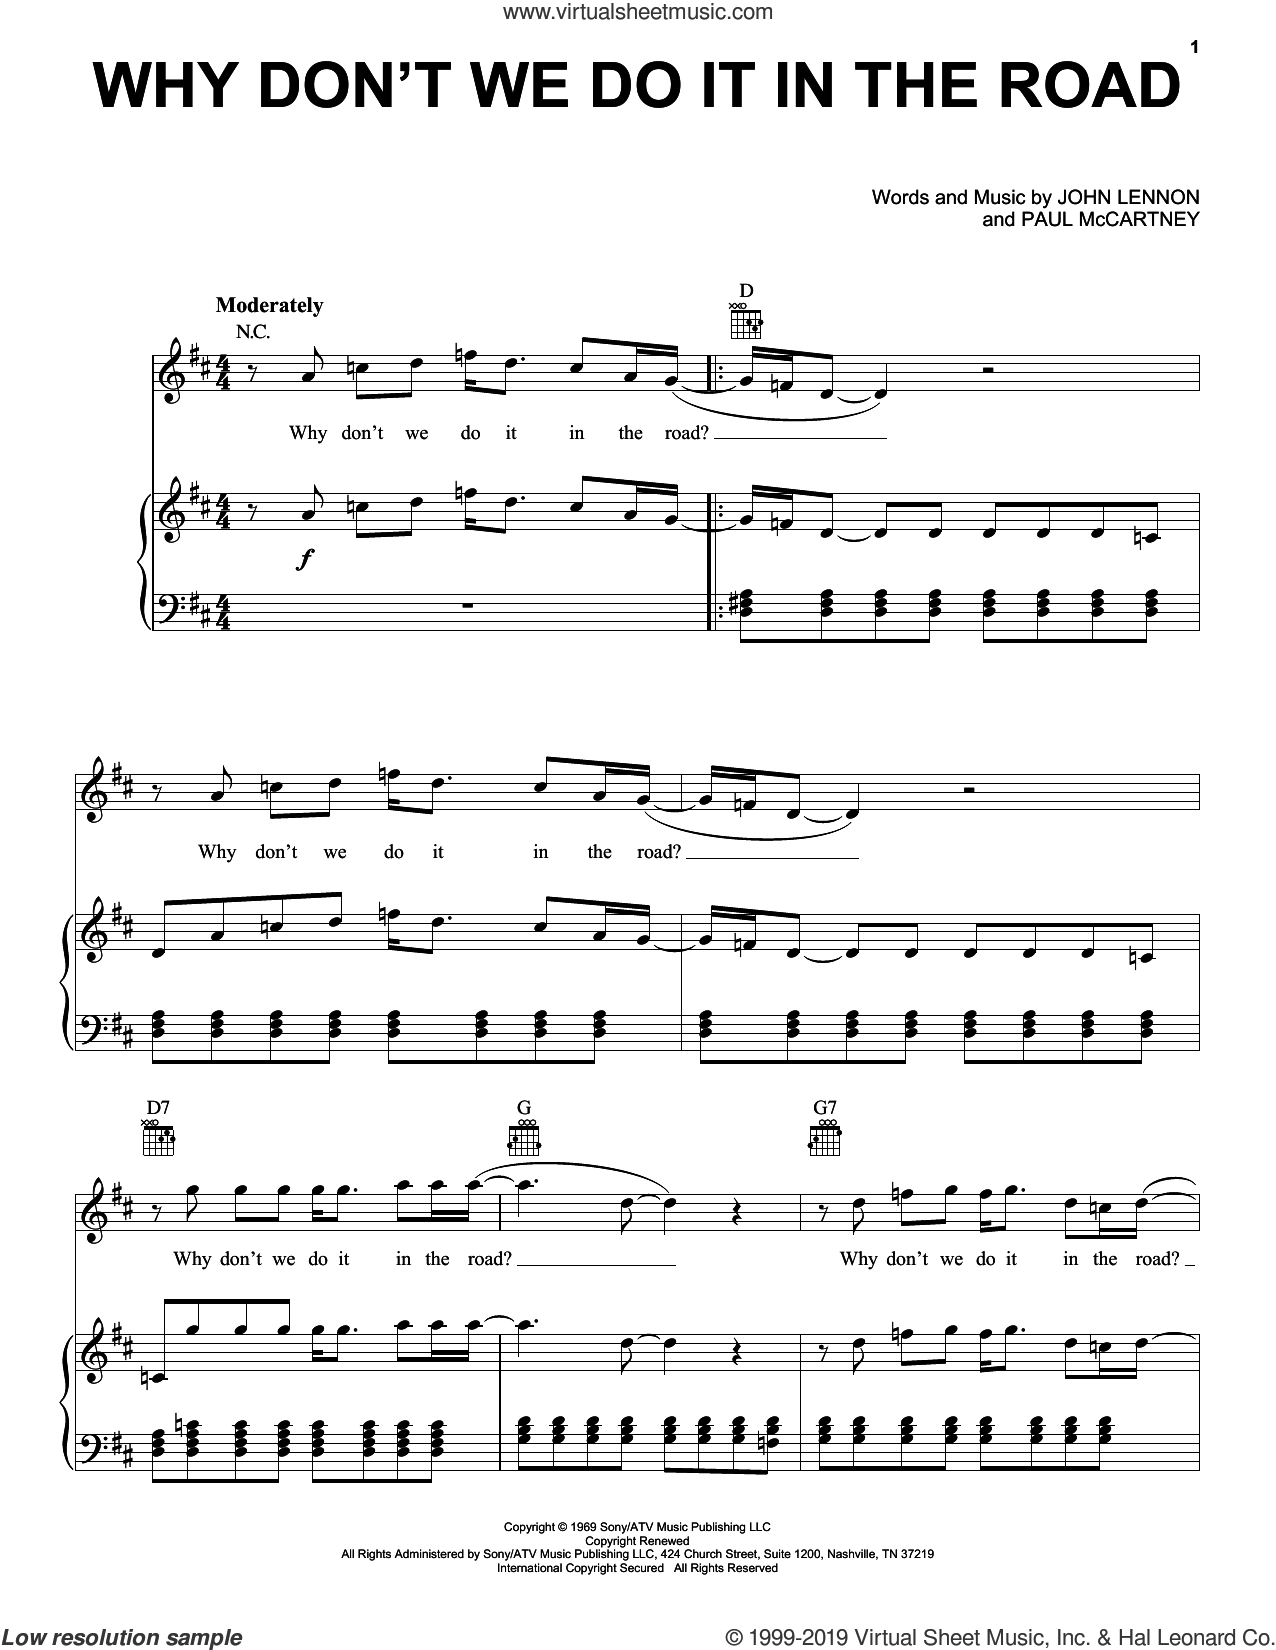 Why Don't We Do It In The Road sheet music for voice, piano or guitar by The Beatles, John Lennon and Paul McCartney, intermediate skill level